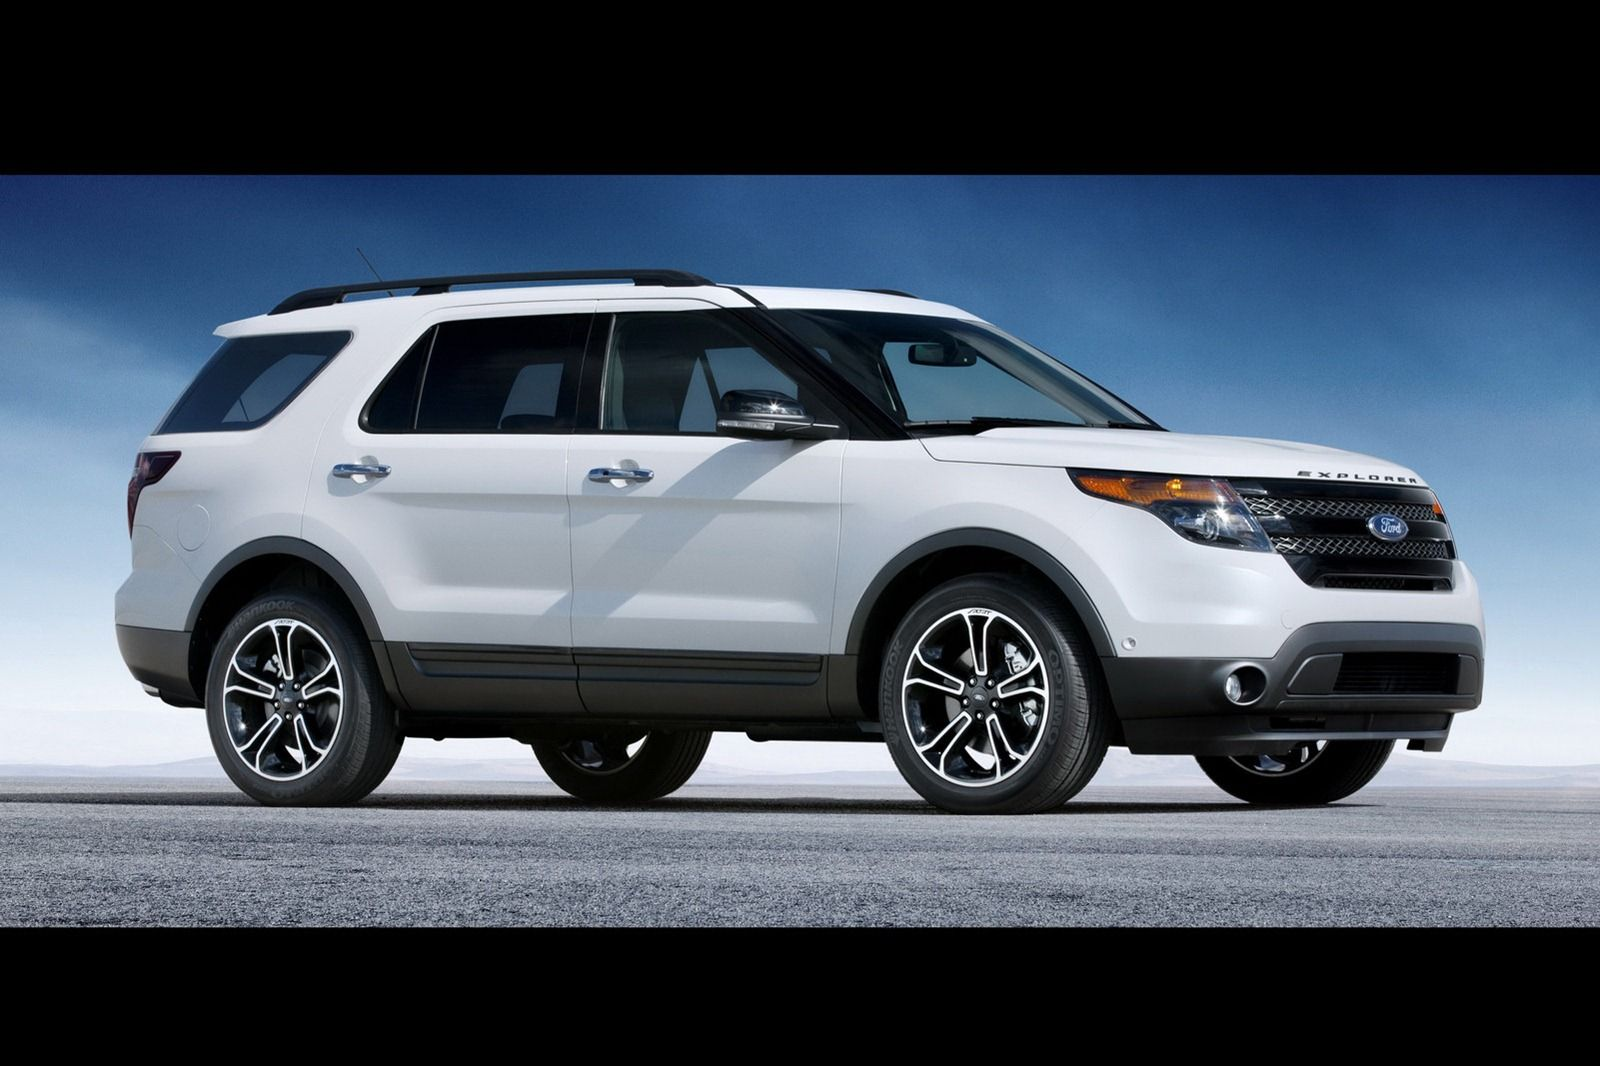 2014 Ford Explorer Side View